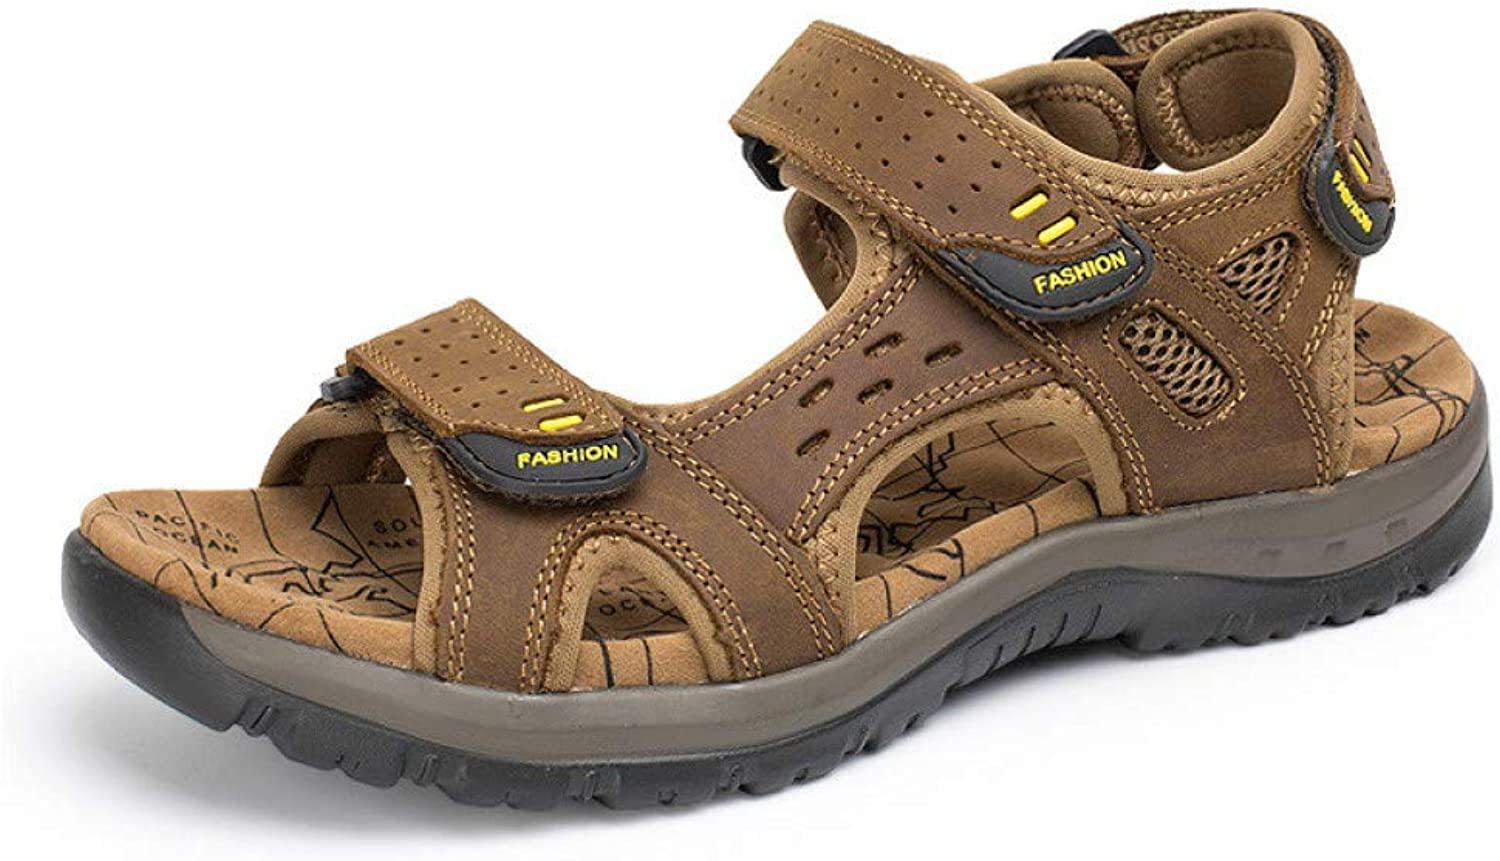 STTXTM Beach Slippers Summer Leisure Beach Men shoes Leather Sandals The Big Yards Men's Sandals Size 38-45 Light Brown